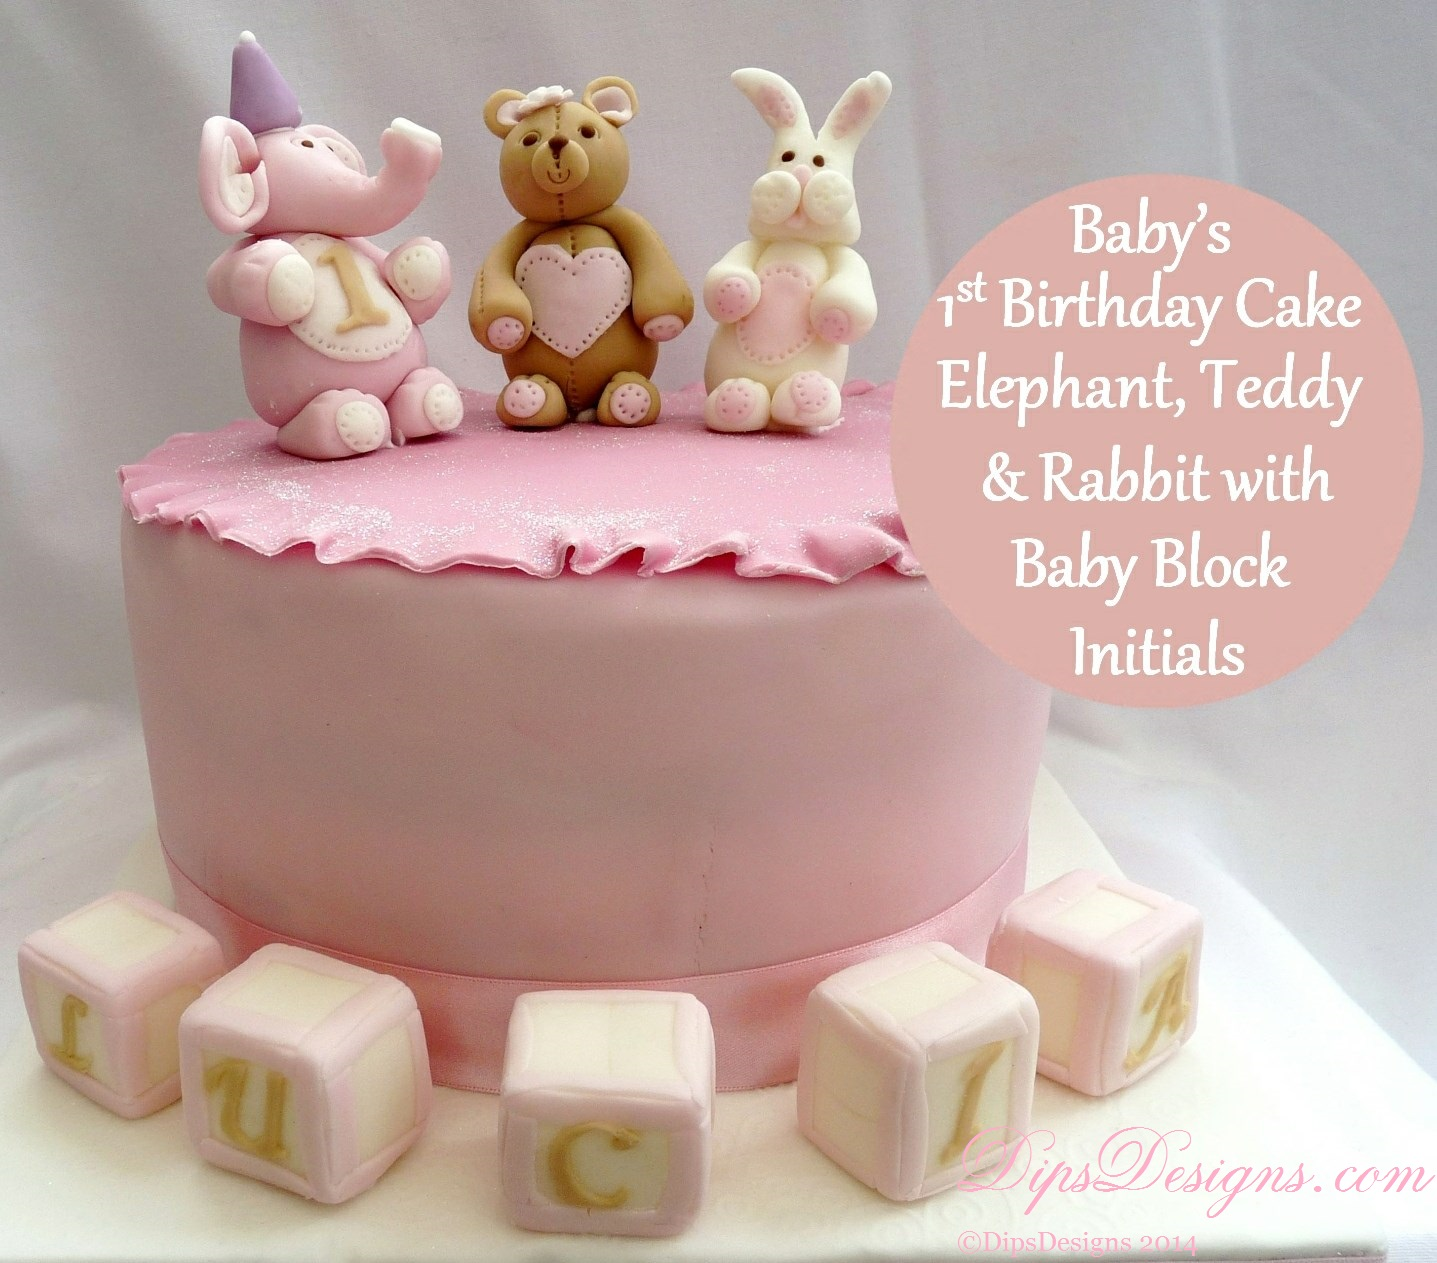 Baby Girl 1st Birthday Vake with fondant Teddy Bear, Elephant, Rabbit & Baby Block Initials First